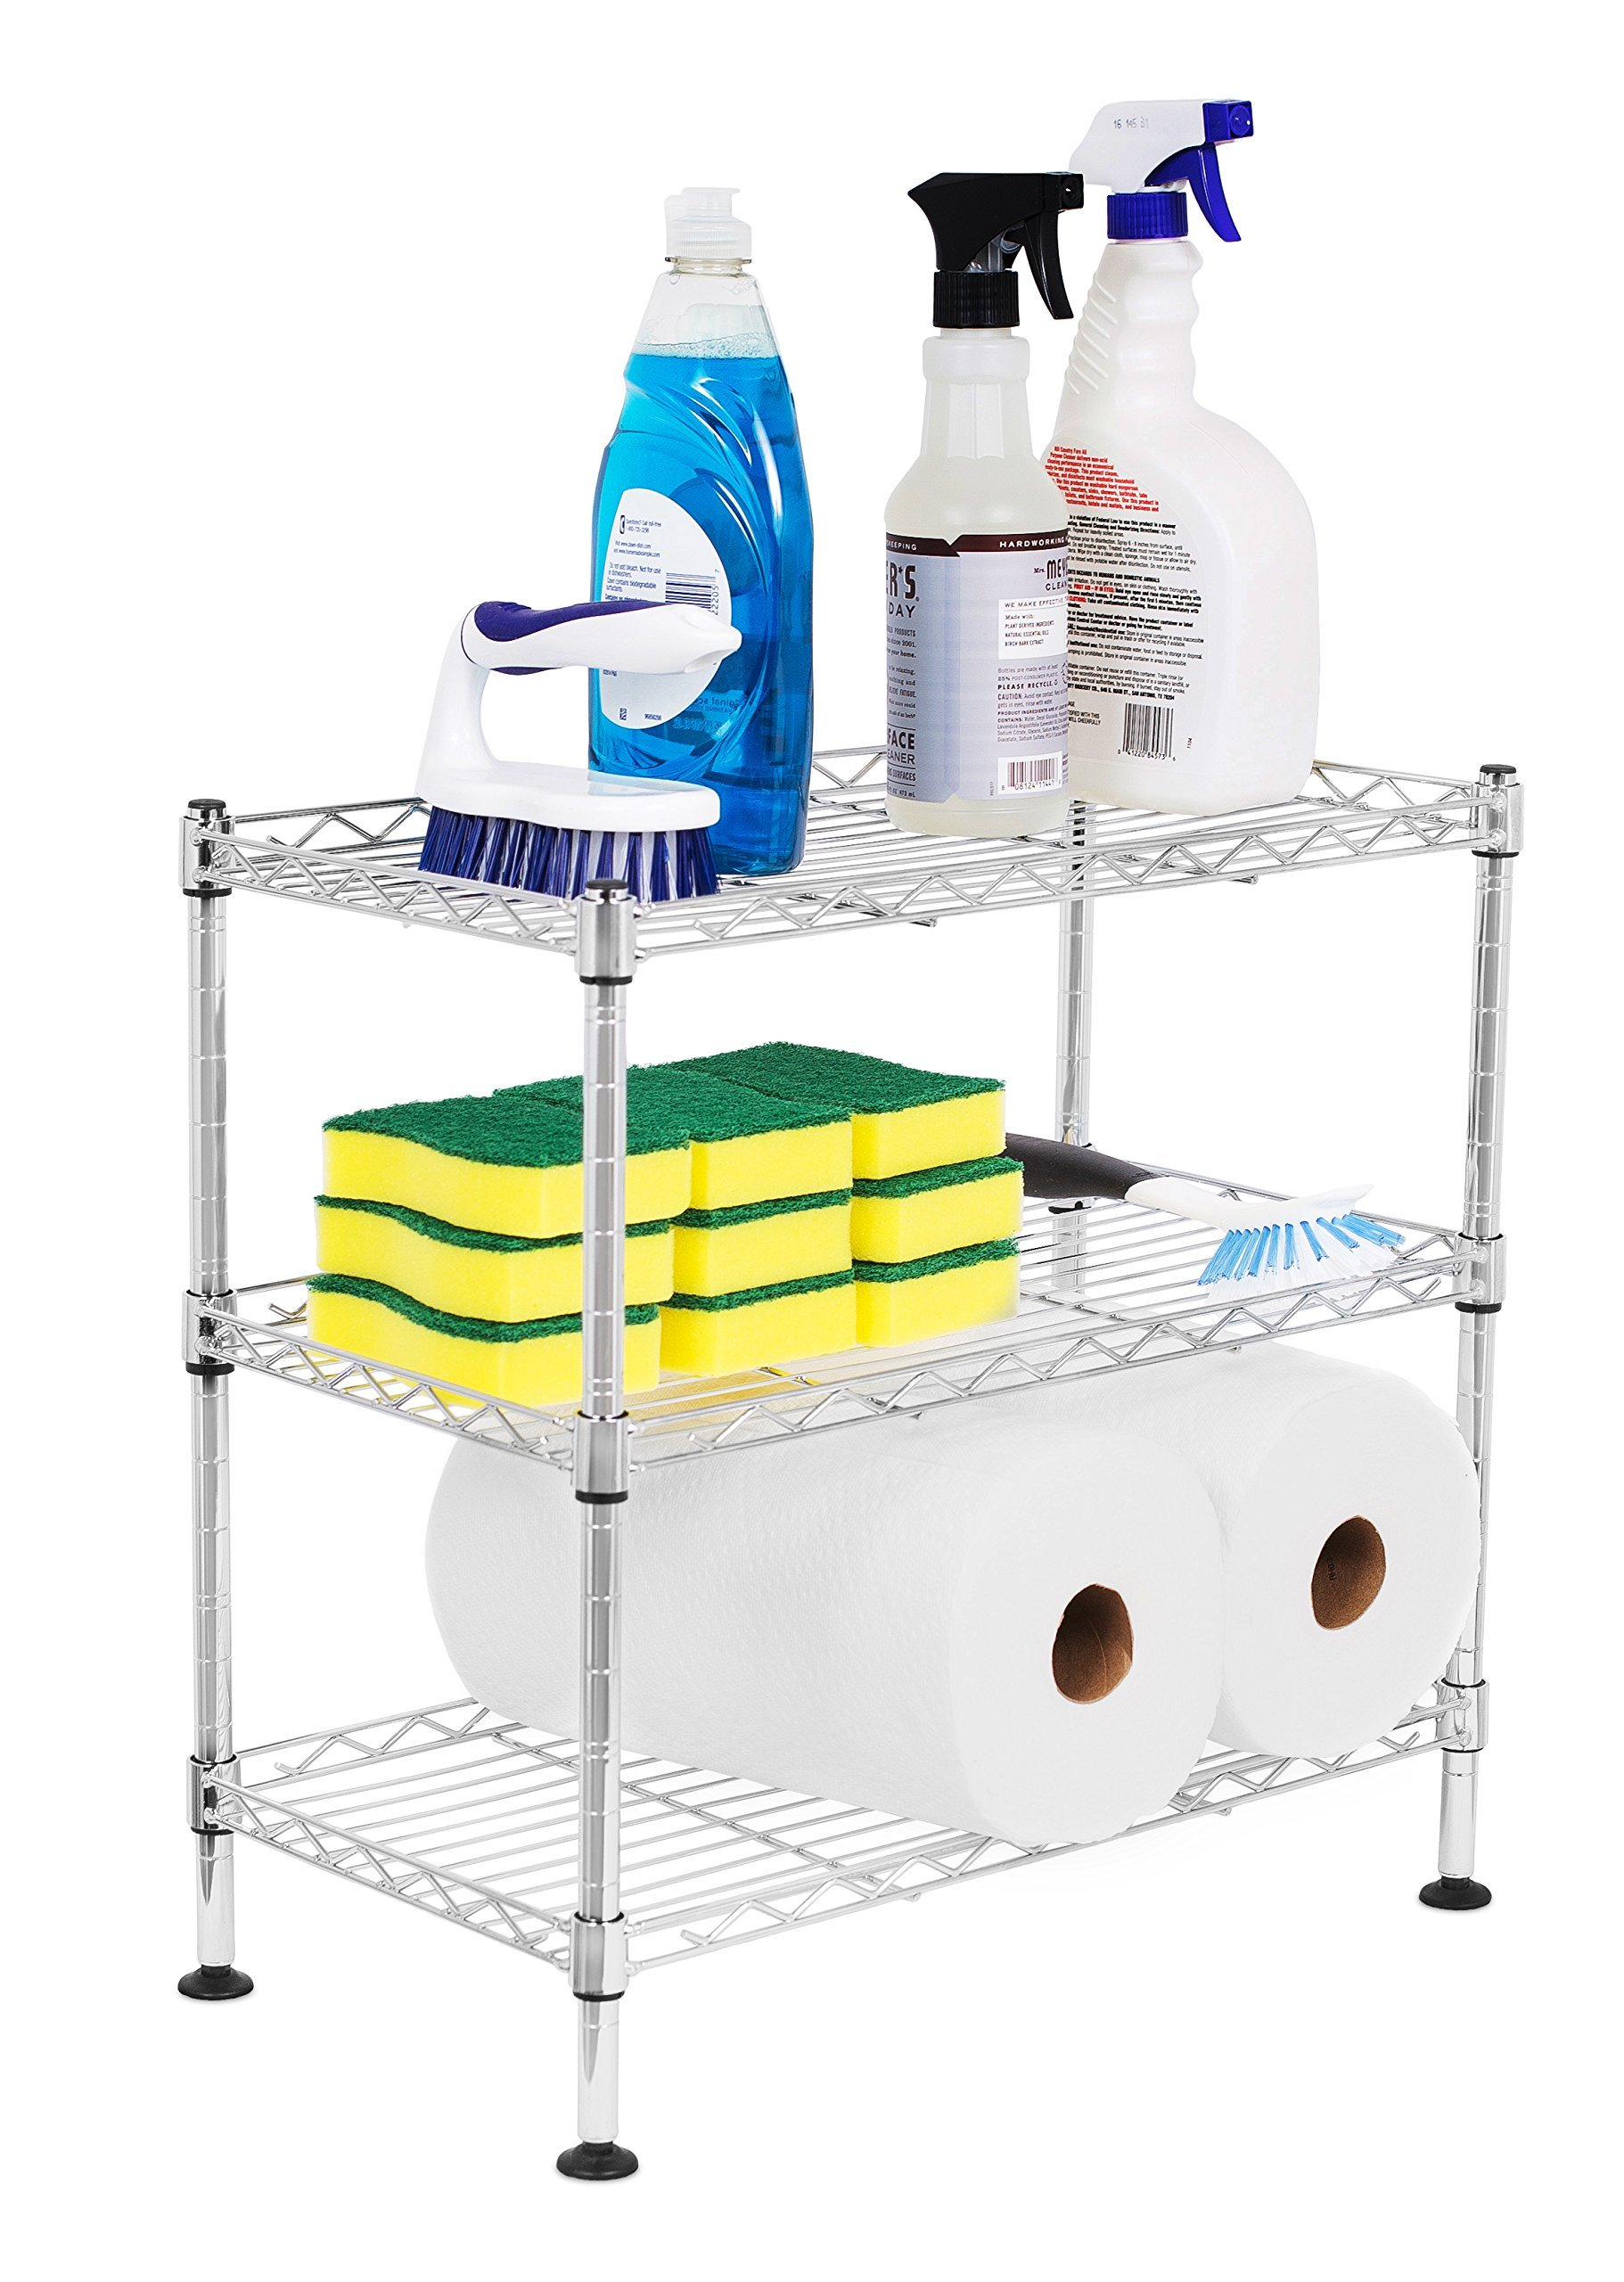 Internet's Best 3-Tier Mini Wire Utility Shelving | Chrome | Shelf | Adjustable Rack Unit | Kitchen Bathroom Pantry Laundry Storage | Under the Sink Organization | Organize your Cabinets | Spi by Internet's Best